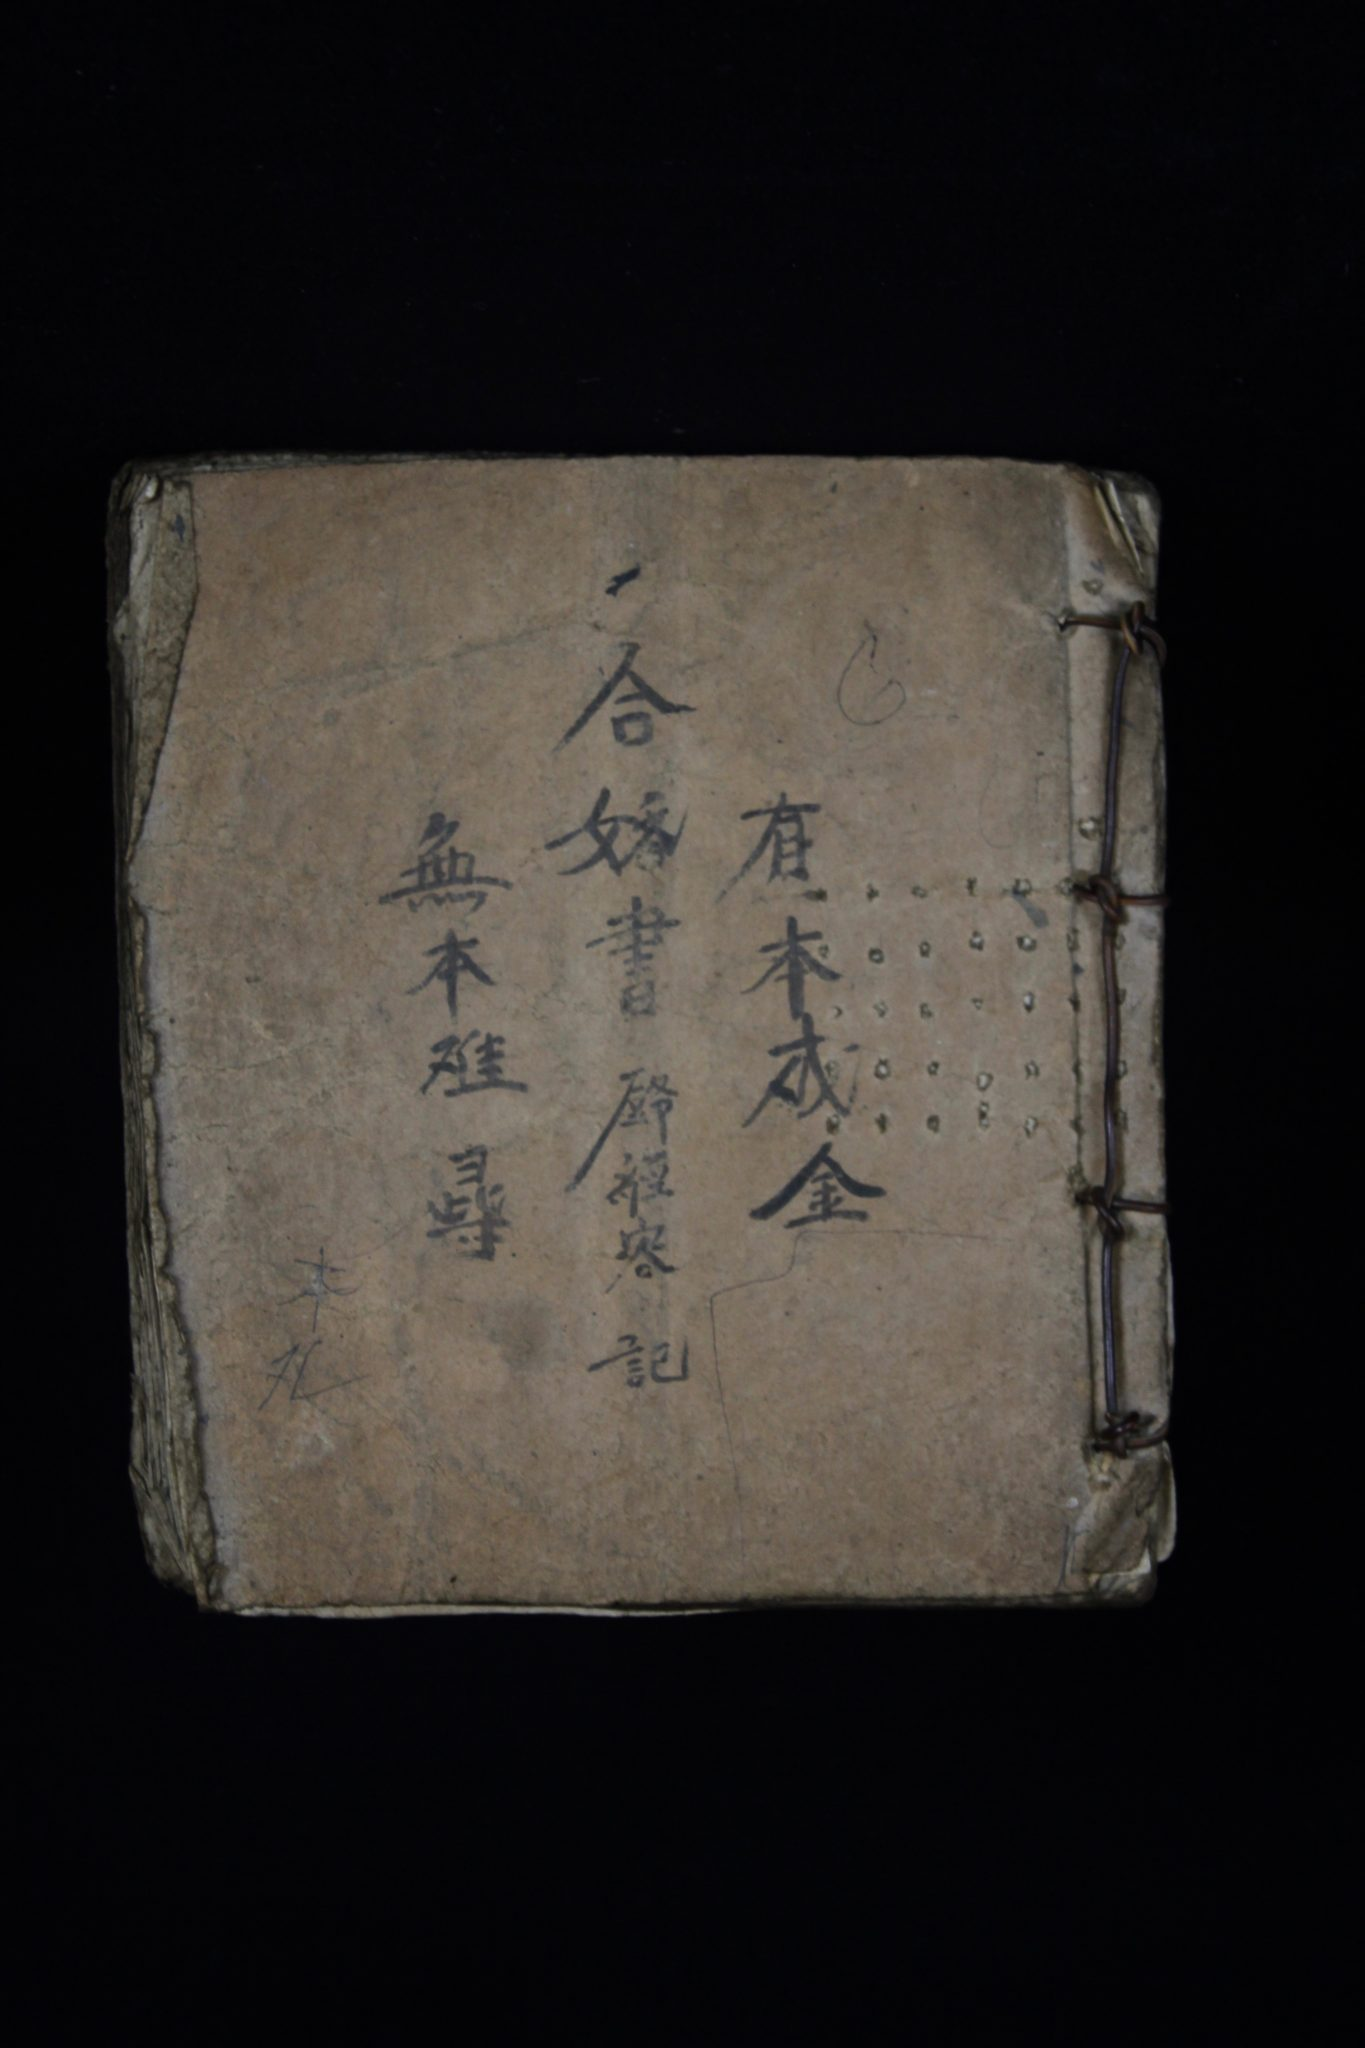 """Shaman's Personal Instruction Book, Cao Bang province, Vietnam, Early 20th c, Ink on handmade mulberry paper (tapa), Written in Nom (Chinese characters adapted to Vietnamese), books are an integral part of a shaman's repertoire. They range from explanations of various rituals and use of objects, to astrology, history, songs, laws, etiquette, children's tales, hunting practices, formulas, spells and Feng Shui. Shaman make their own books to help store their knowledge therefore no two are alike and a high level shaman will have a large library. 9 ½"""" x 8 ½"""" x ¾"""", $850."""